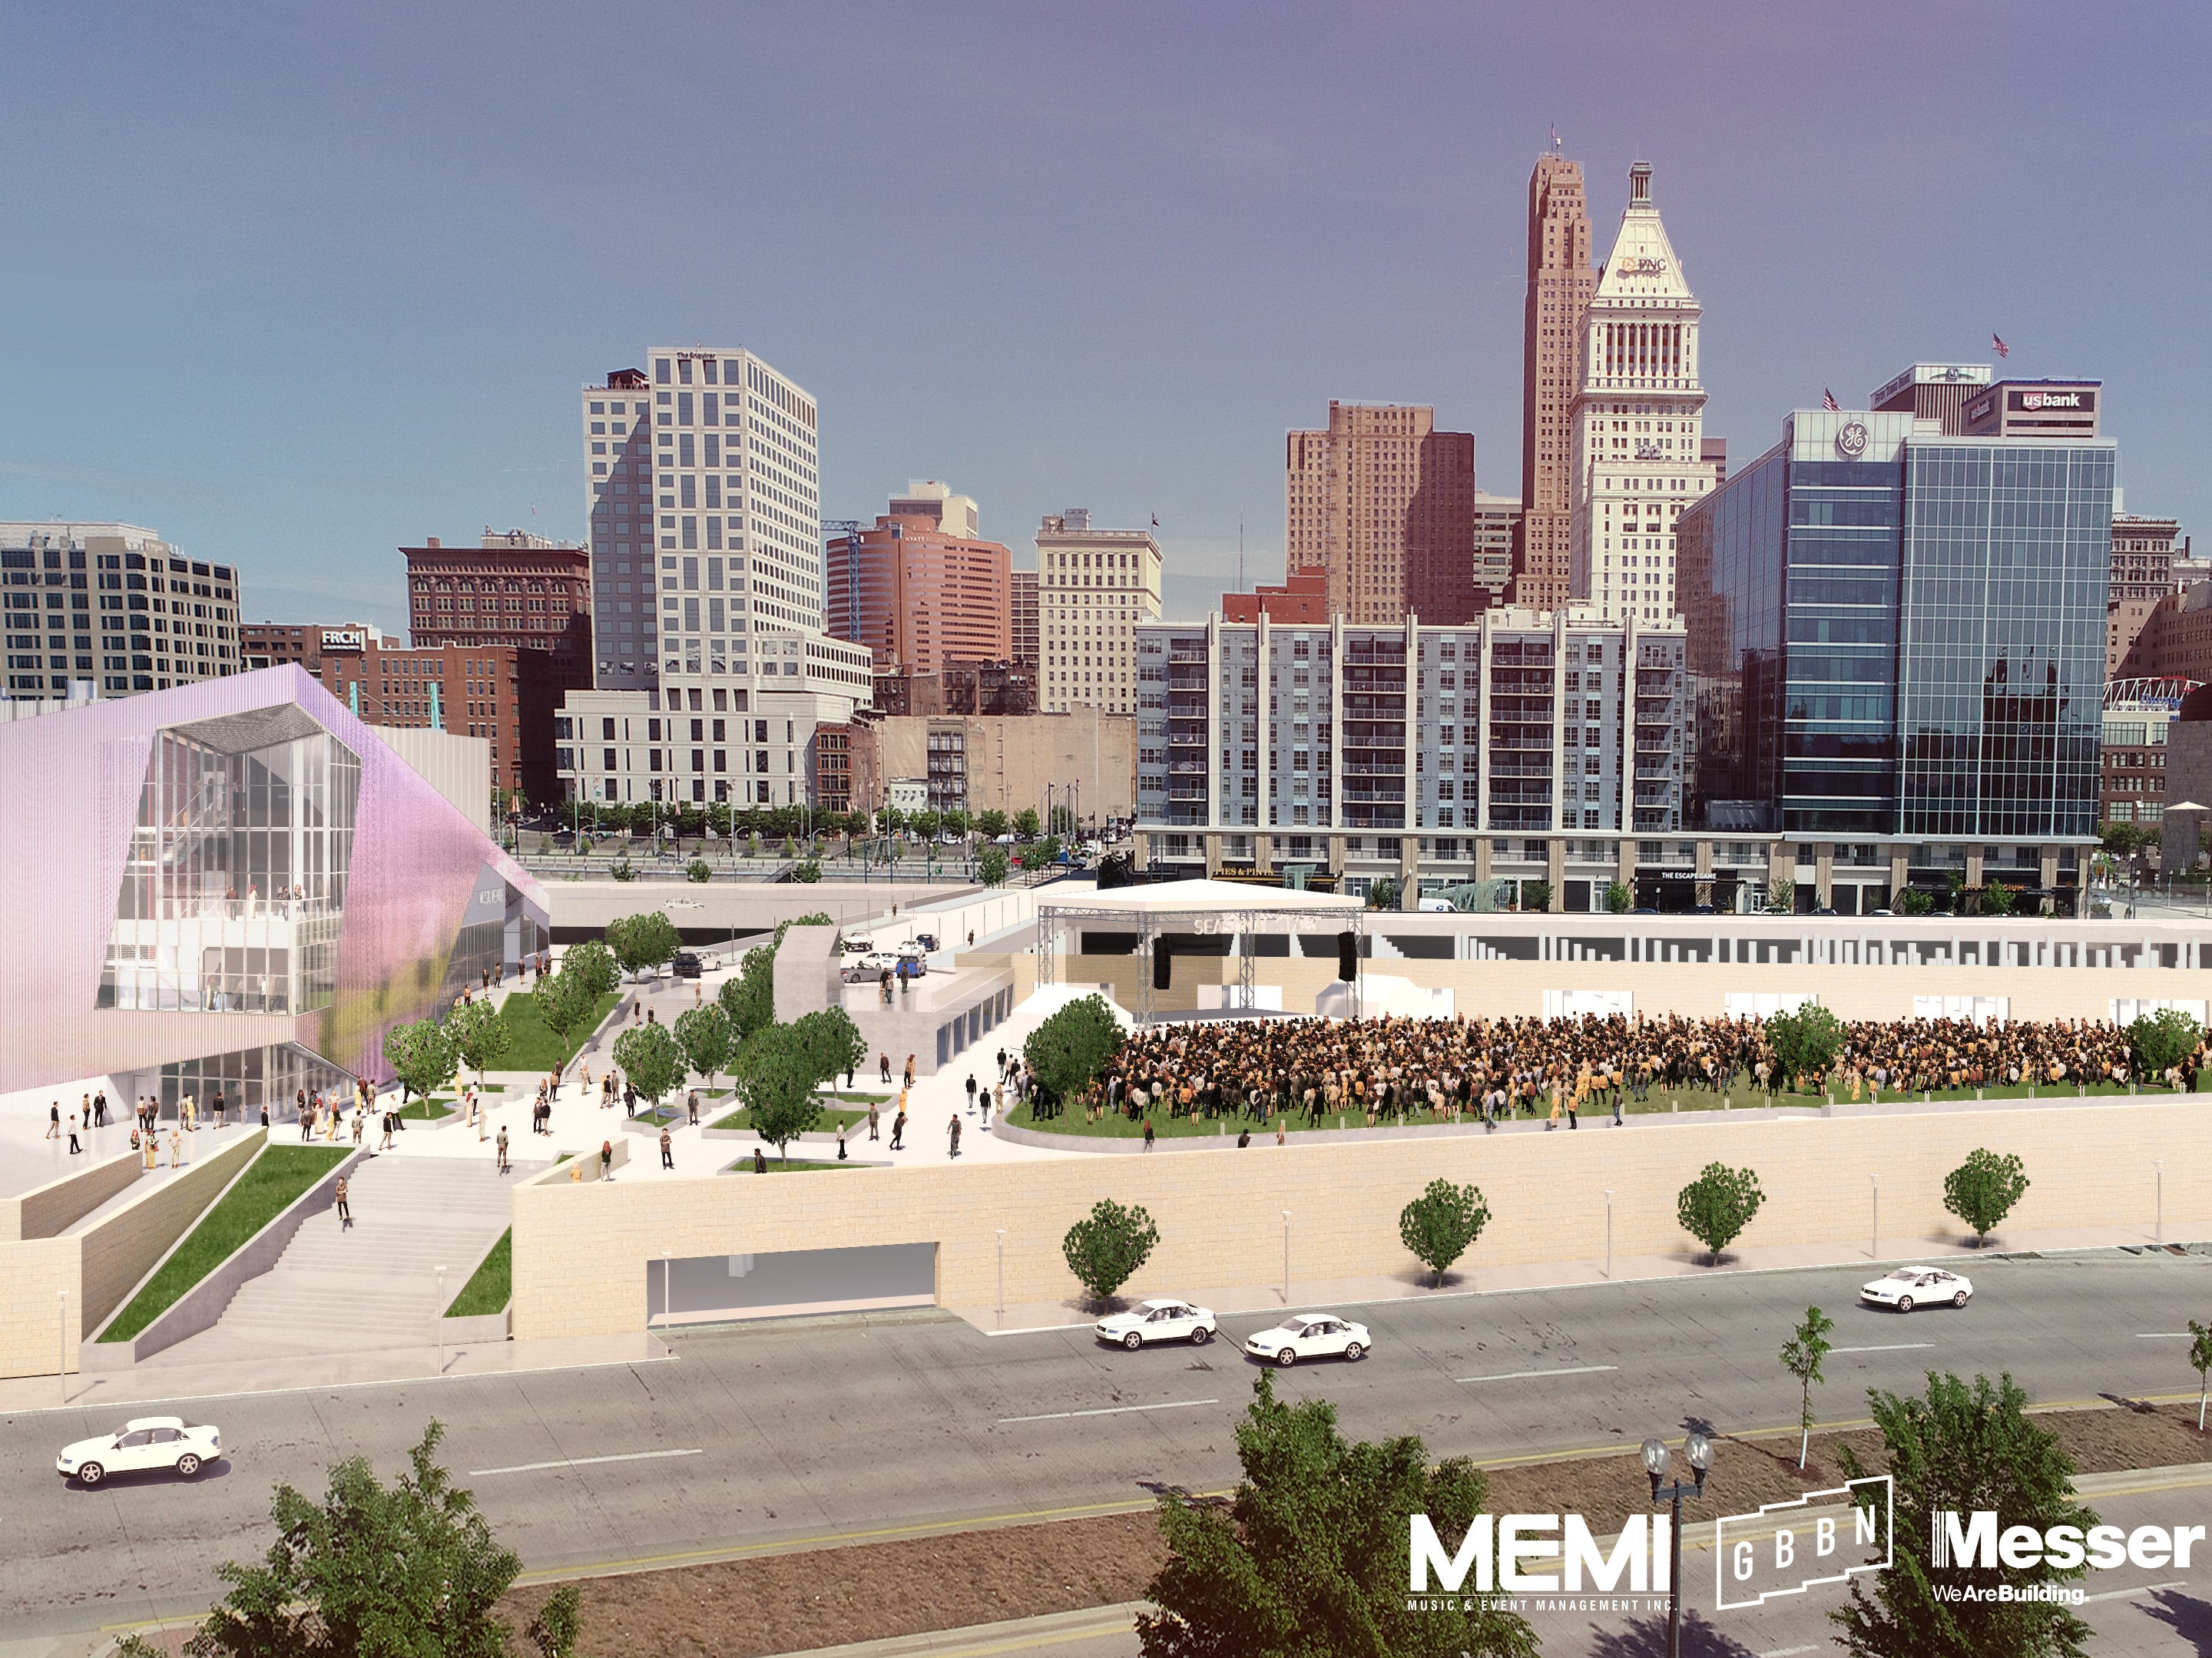 Here's what the new music venue at the Banks will look like. Plans for the new music venue are complete and ready to begin construction, according to Music & Event Management, Inc.